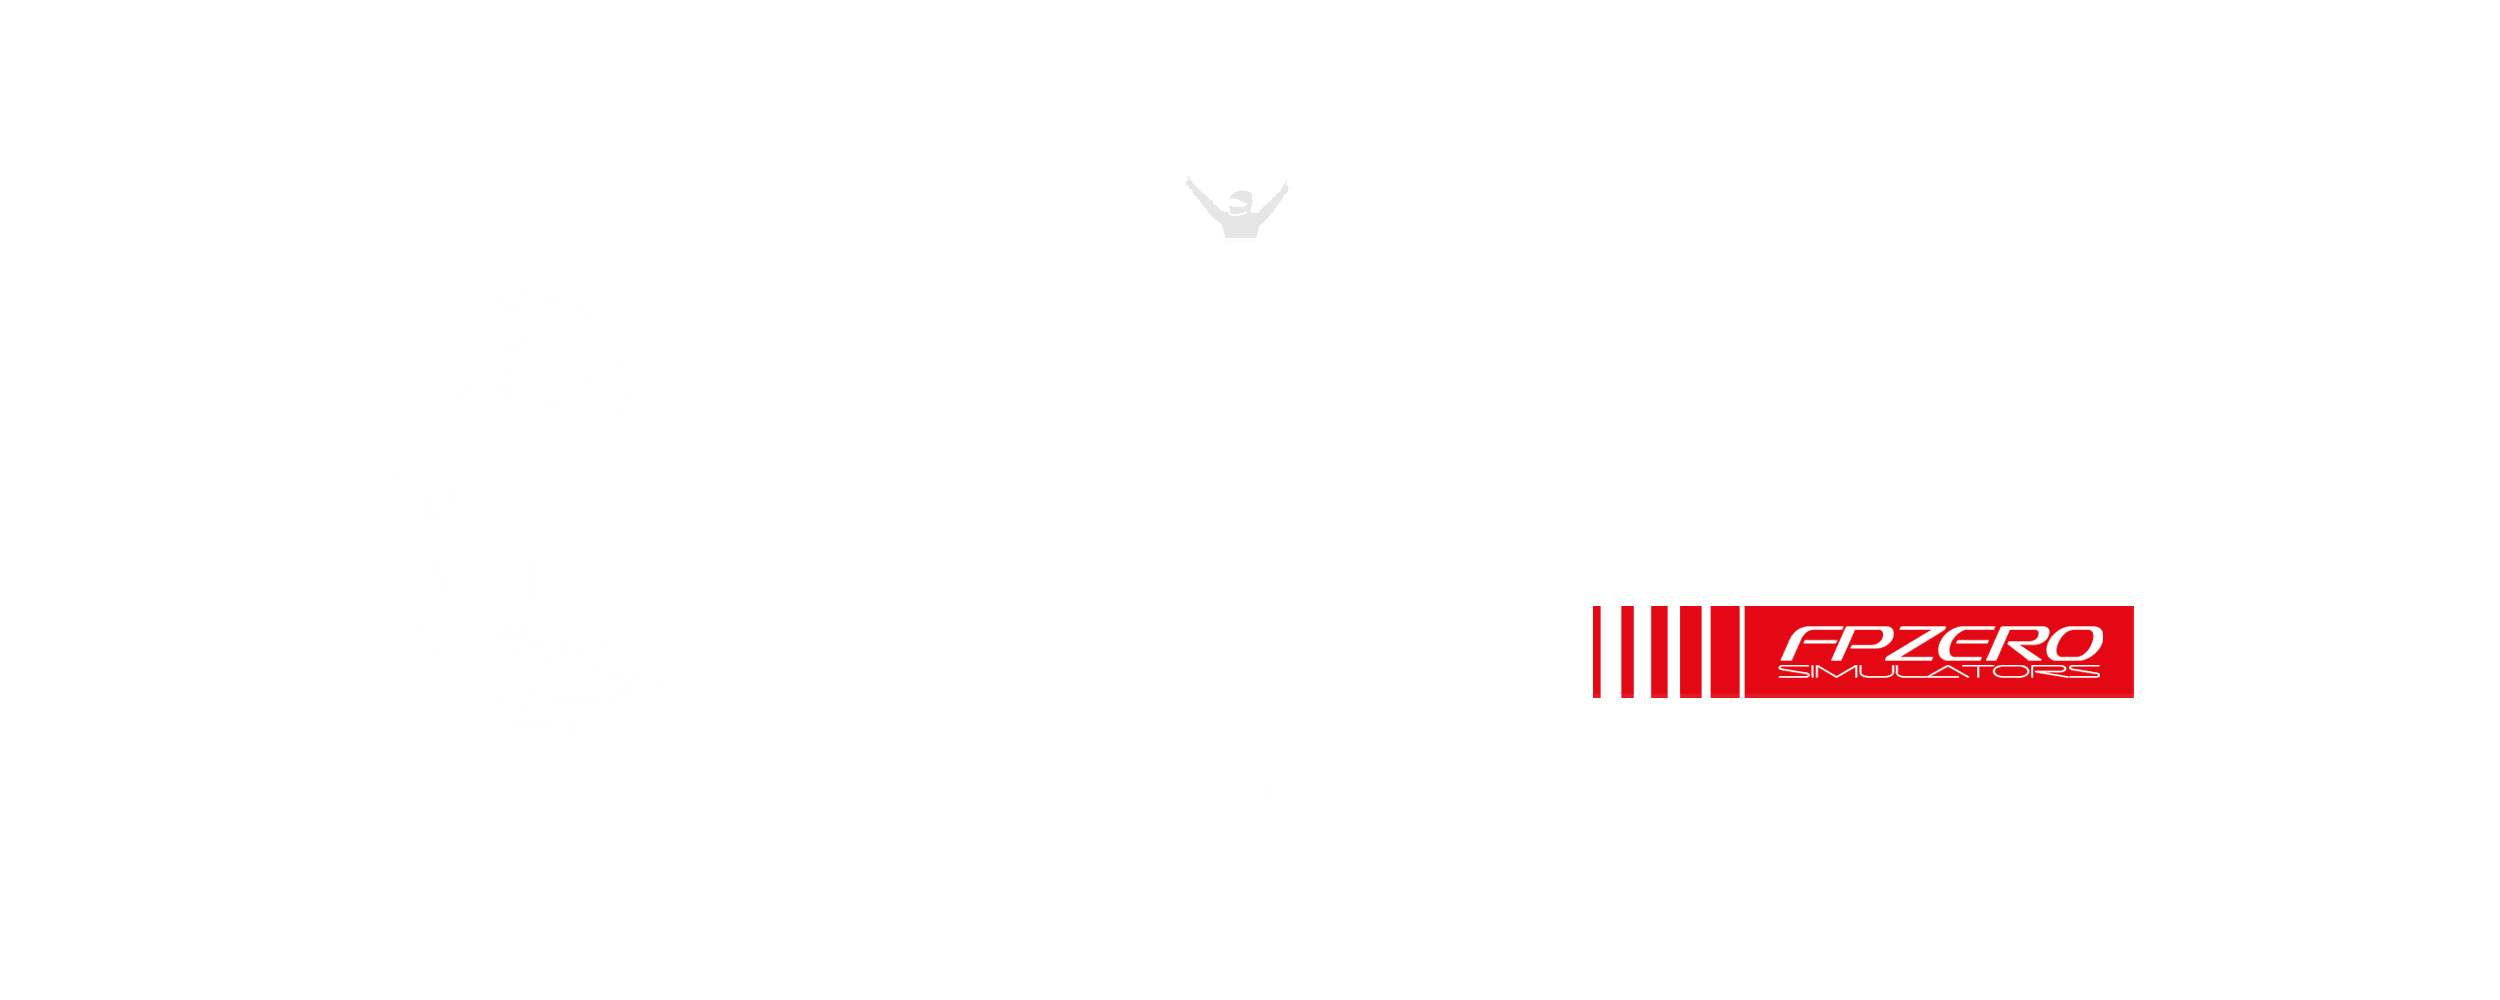 Kokoro Invitational Series